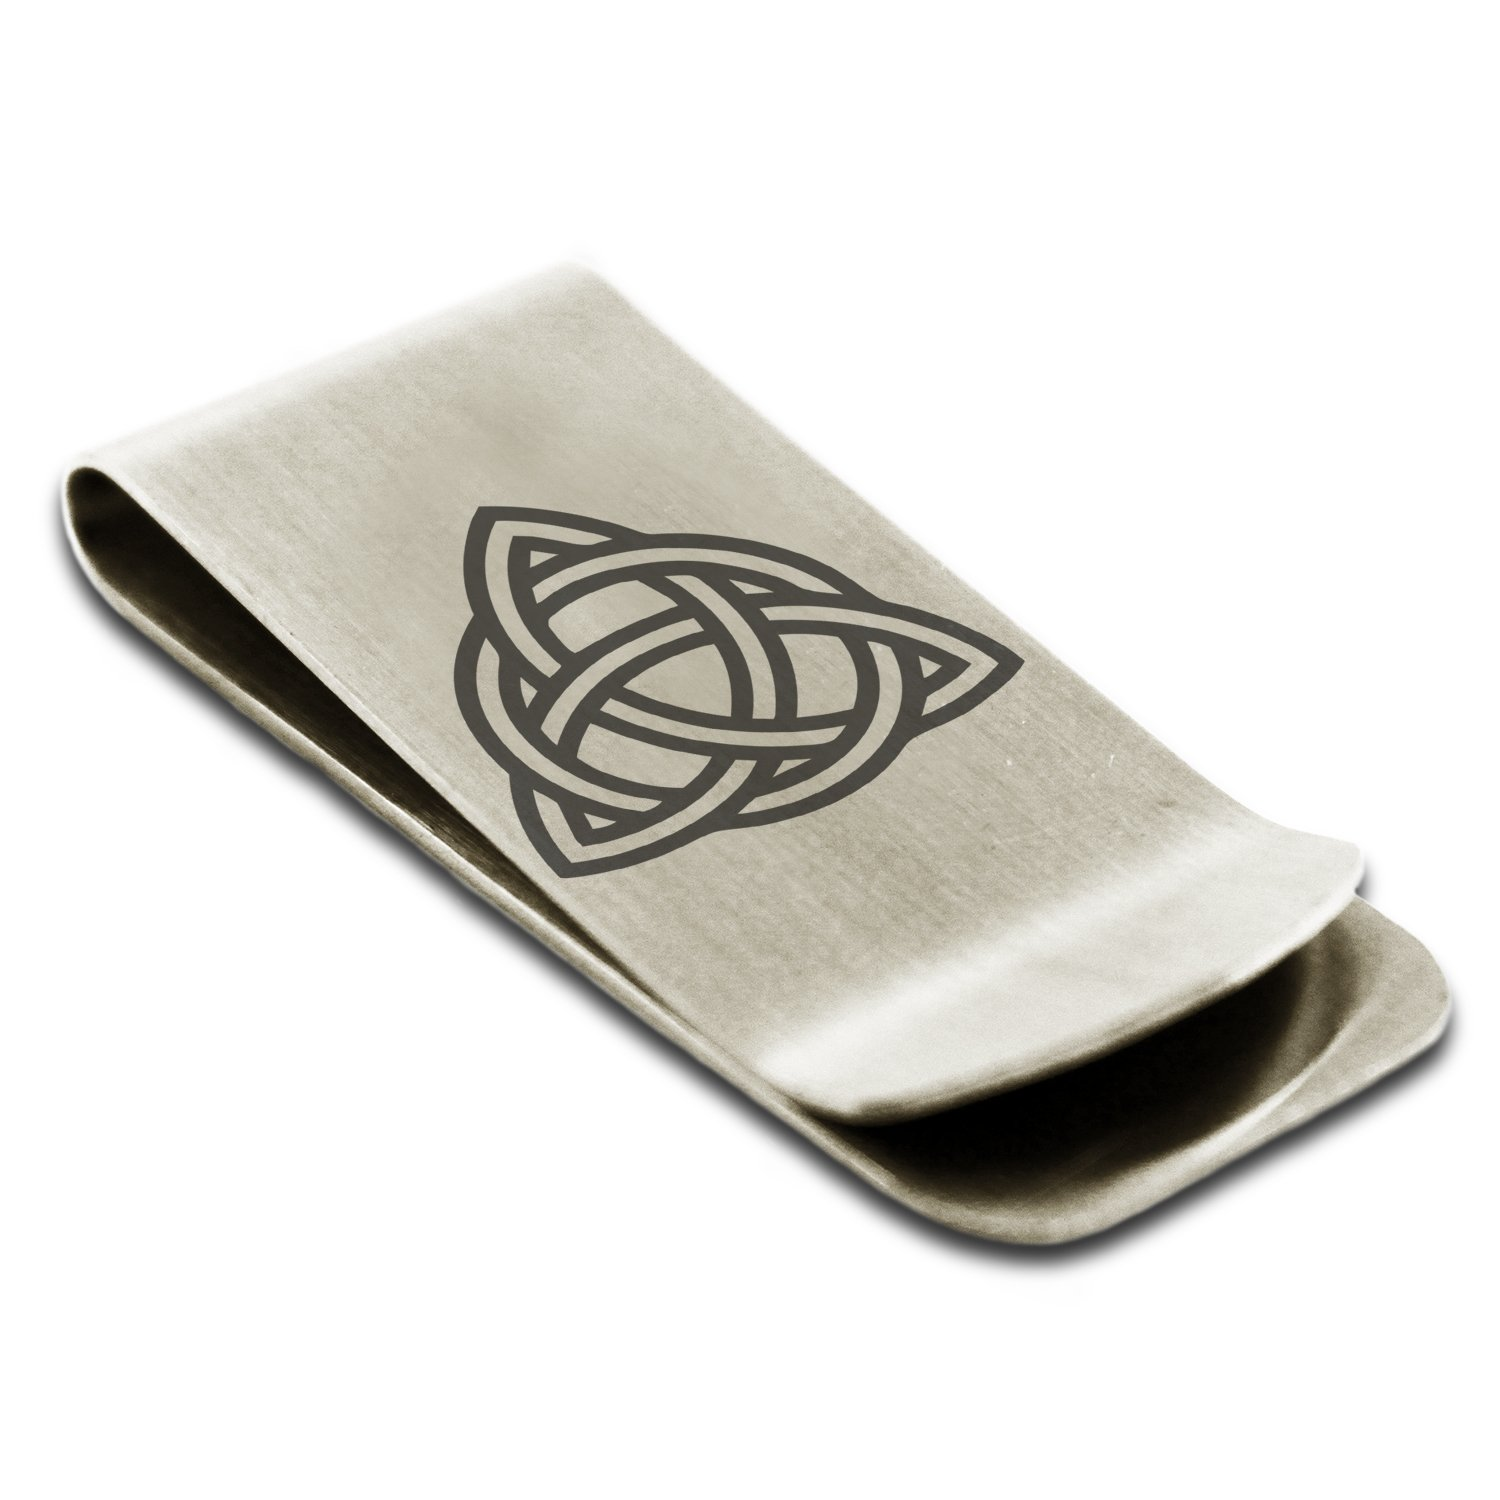 Stainless Steel Triquetra Holy Trinity Symbol Engraved Money Clip Credit Card Holder Tioneer RE006-ESM004